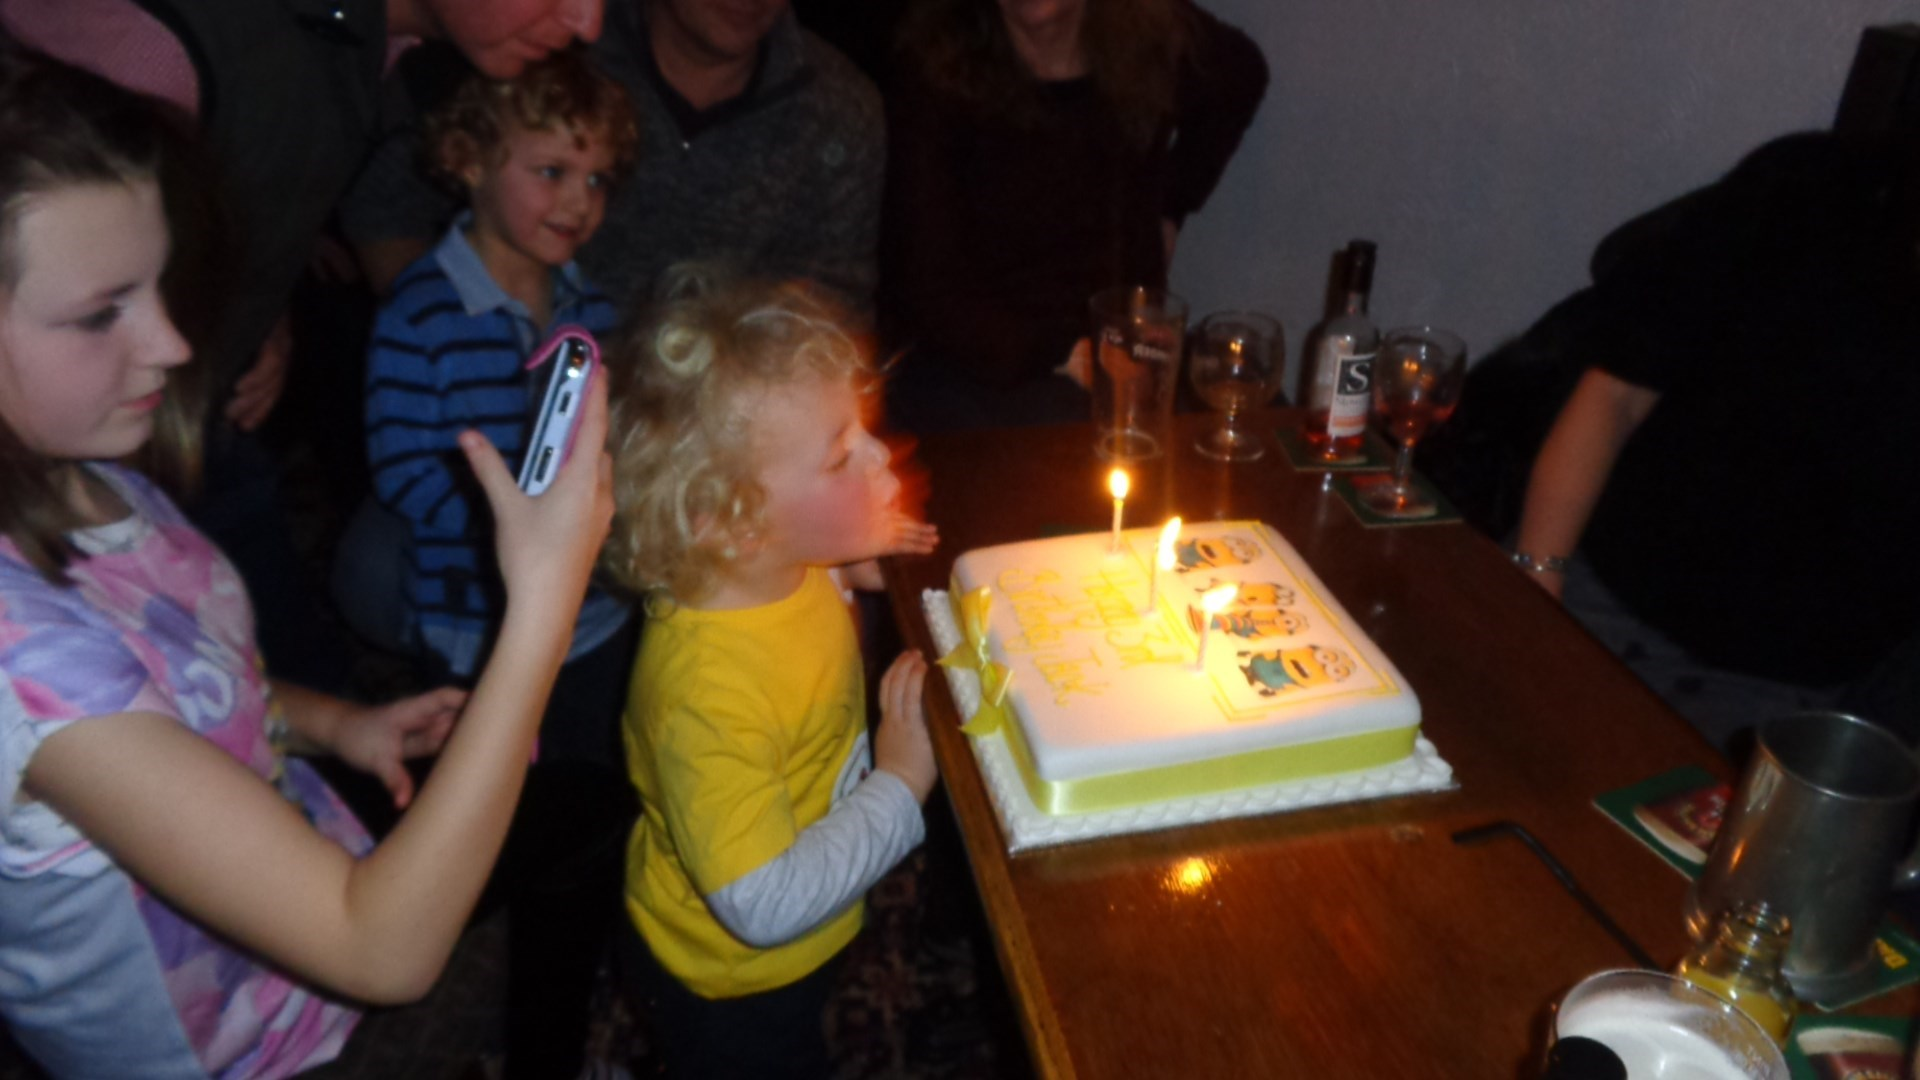 Jack blowing out the magic candles